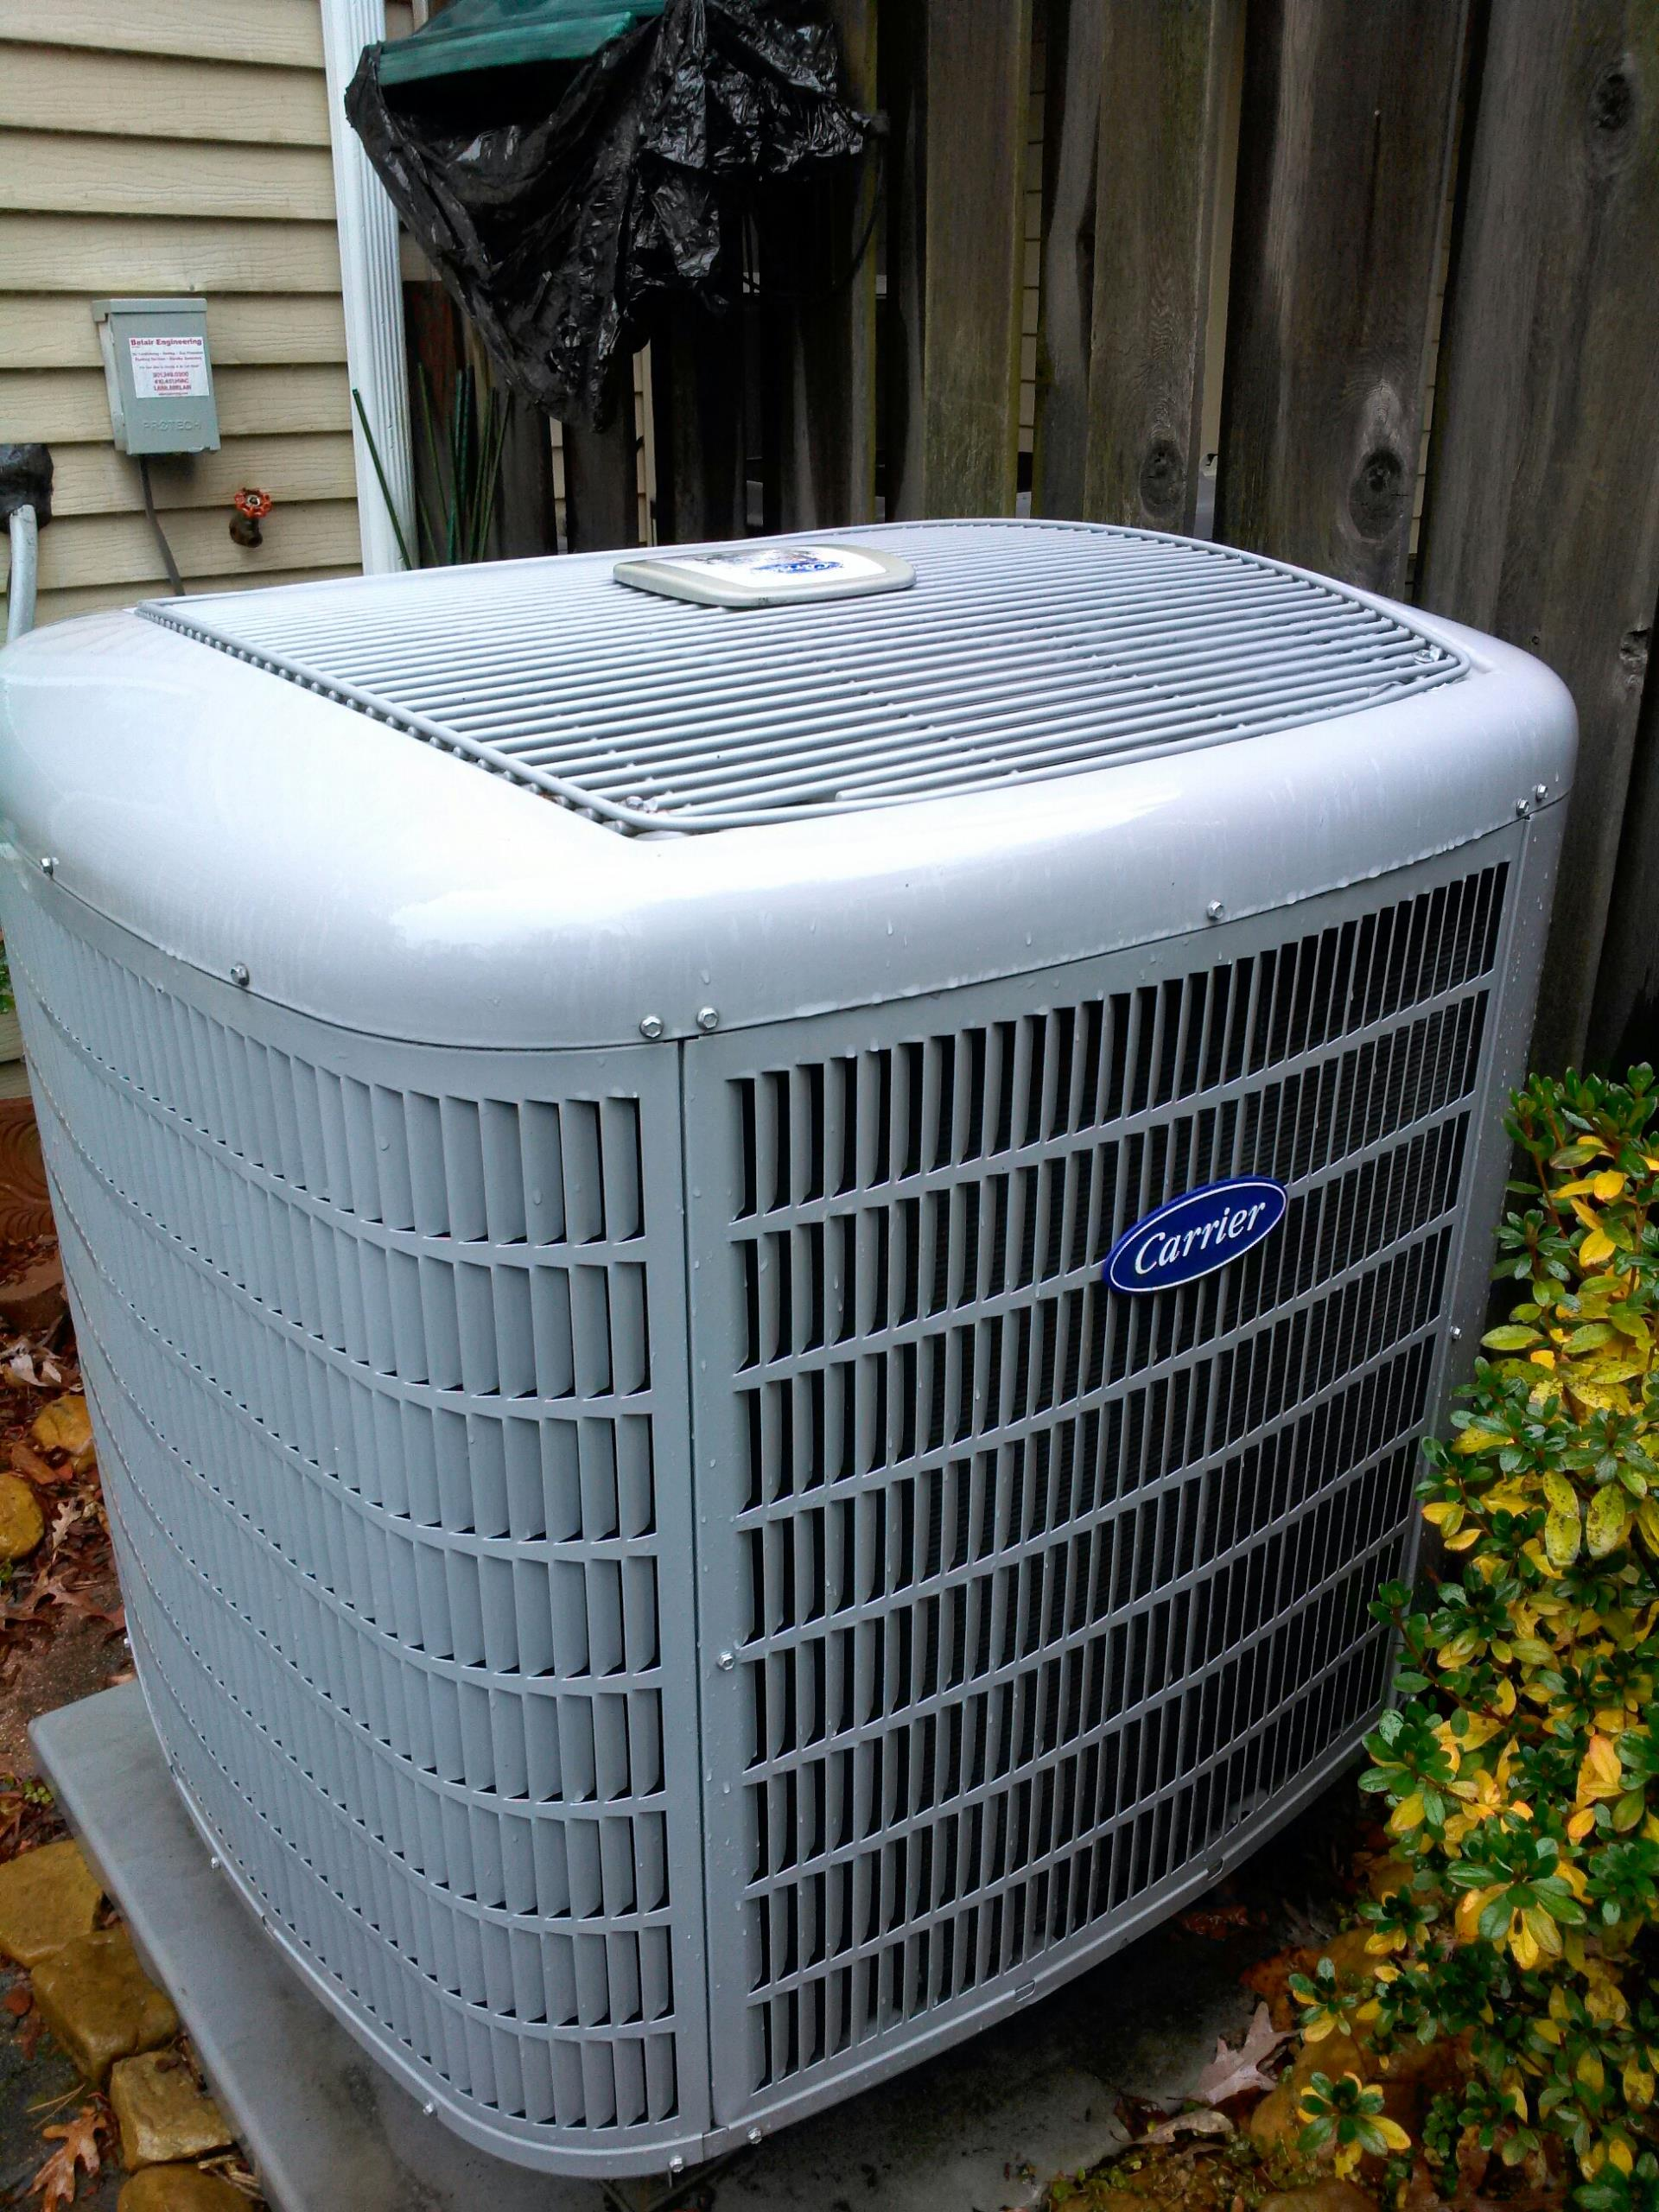 #63461F AC Air Conditioning Heat Pump & A/C Repair Service  Brand New 8421 Air Conditioning Contractors Melbourne Fl images with 1920x2560 px on helpvideos.info - Air Conditioners, Air Coolers and more